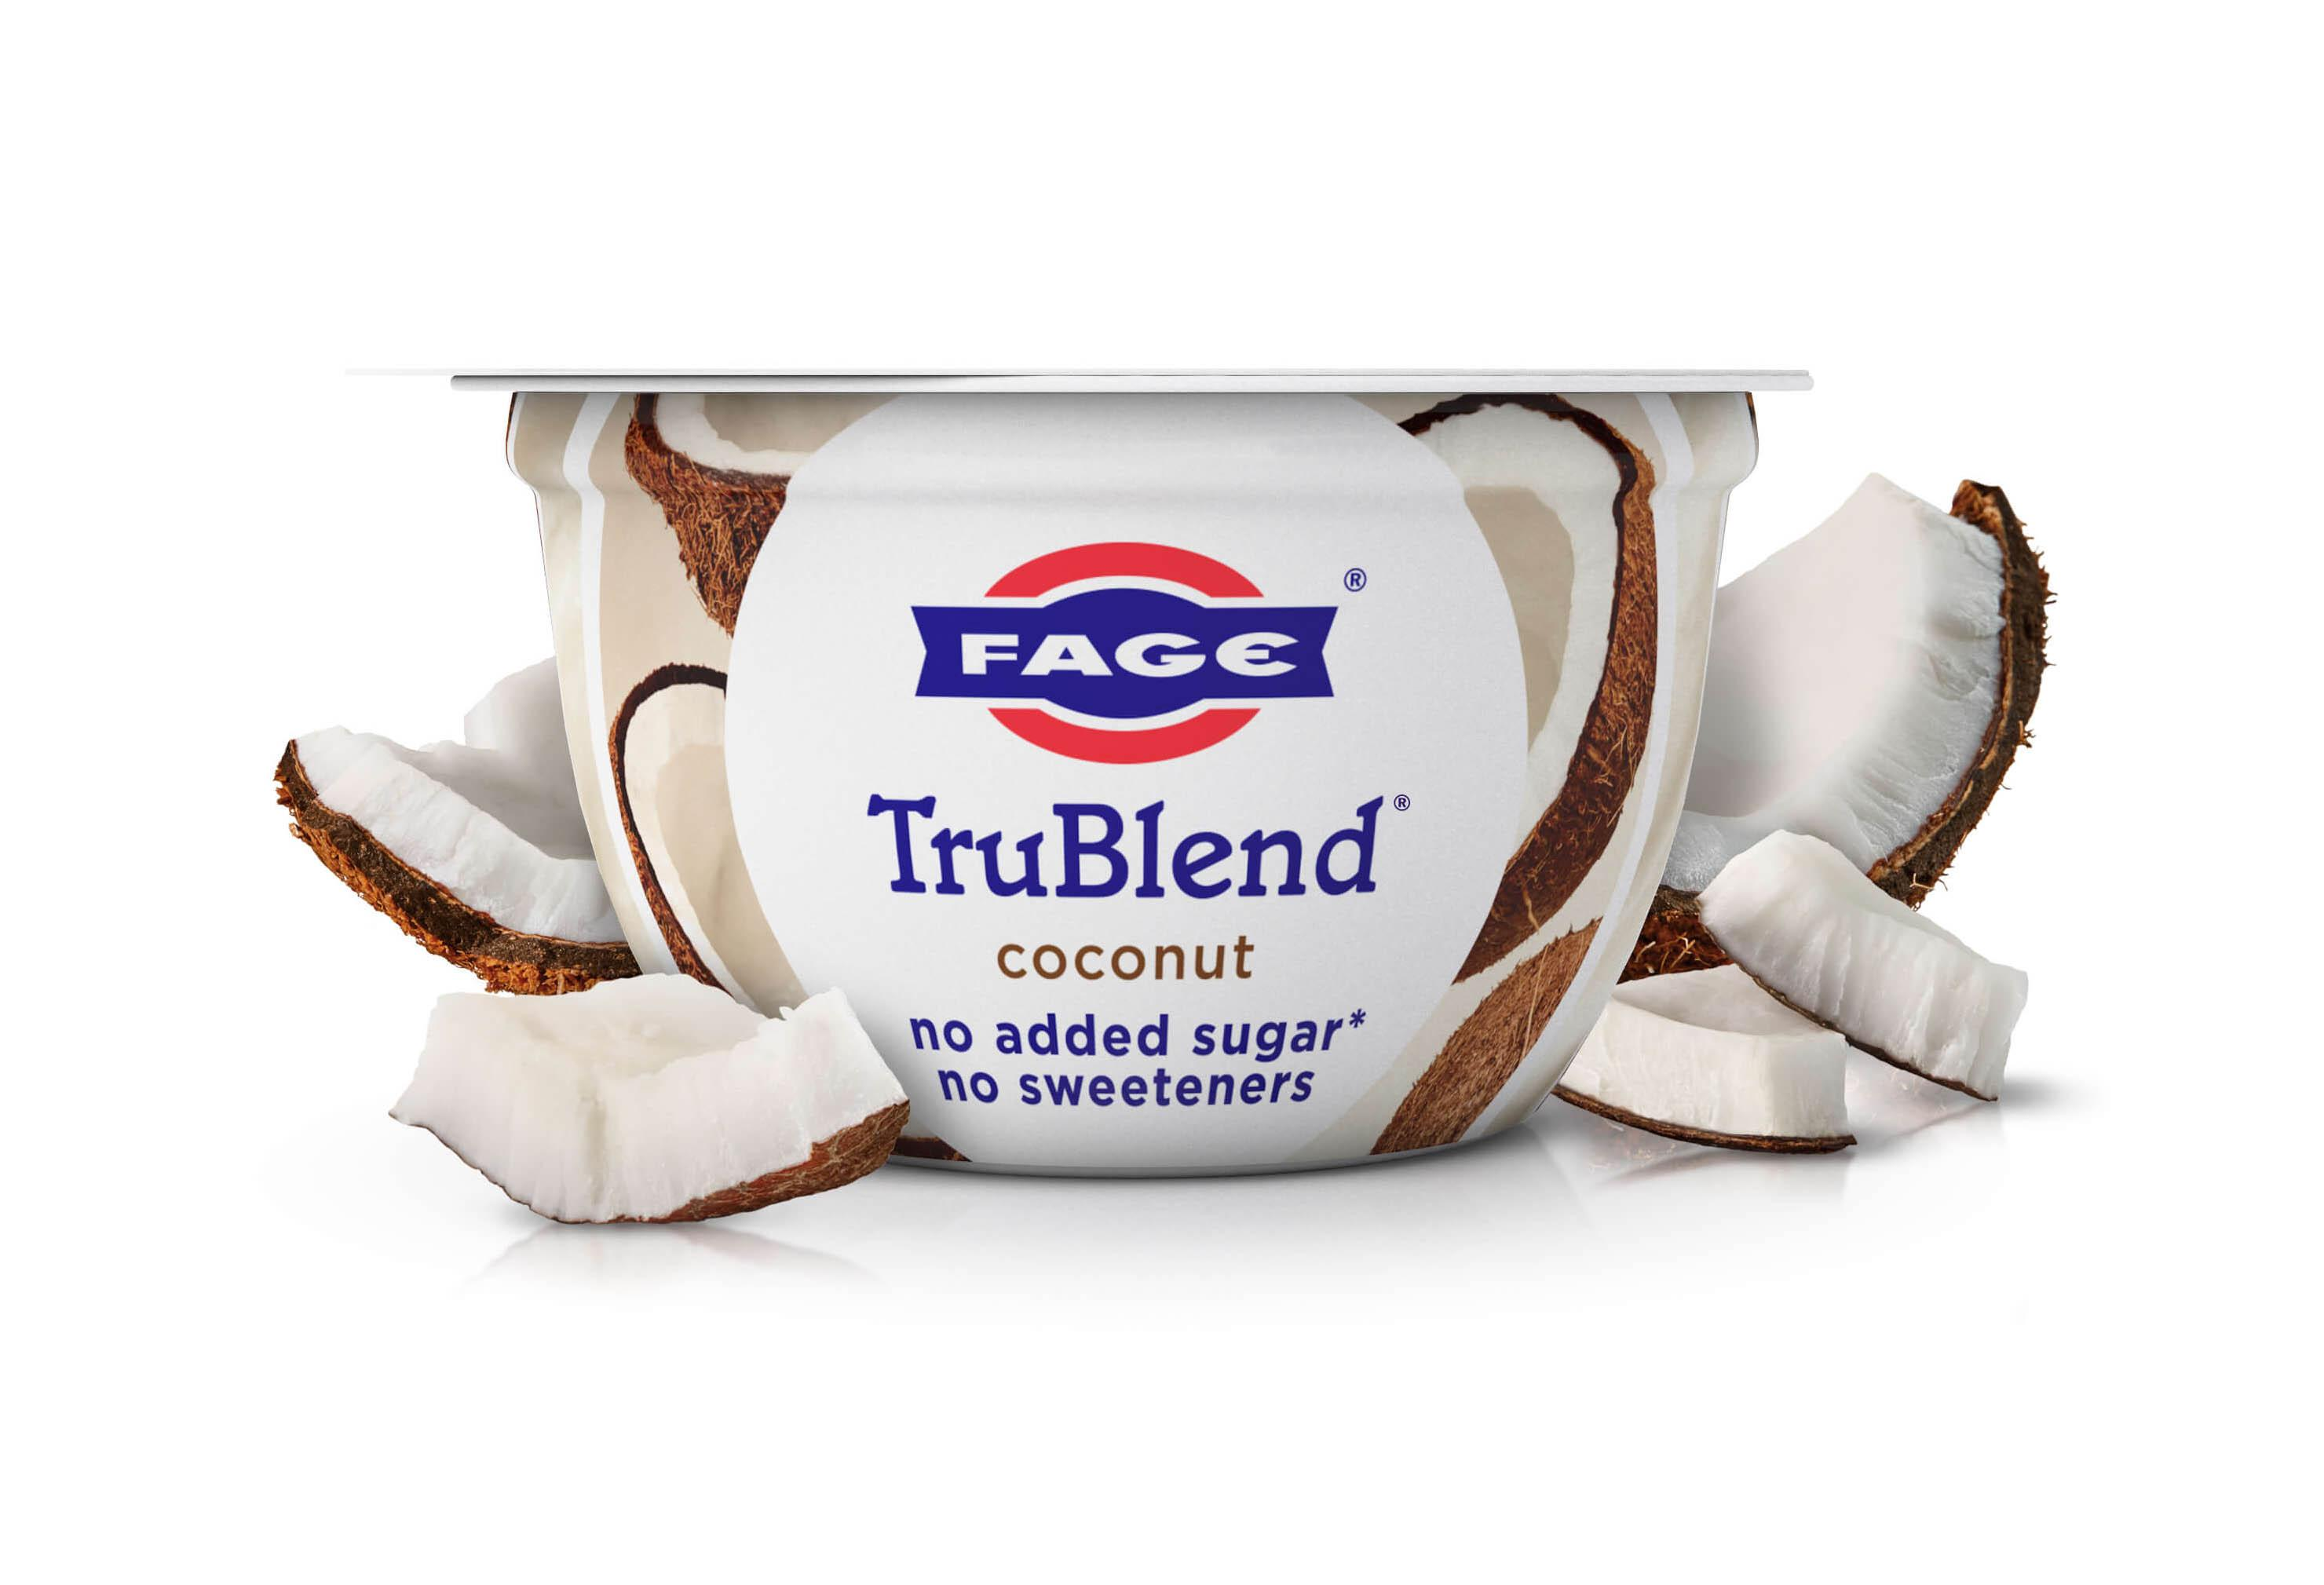 FAGE TruBlend Coconut